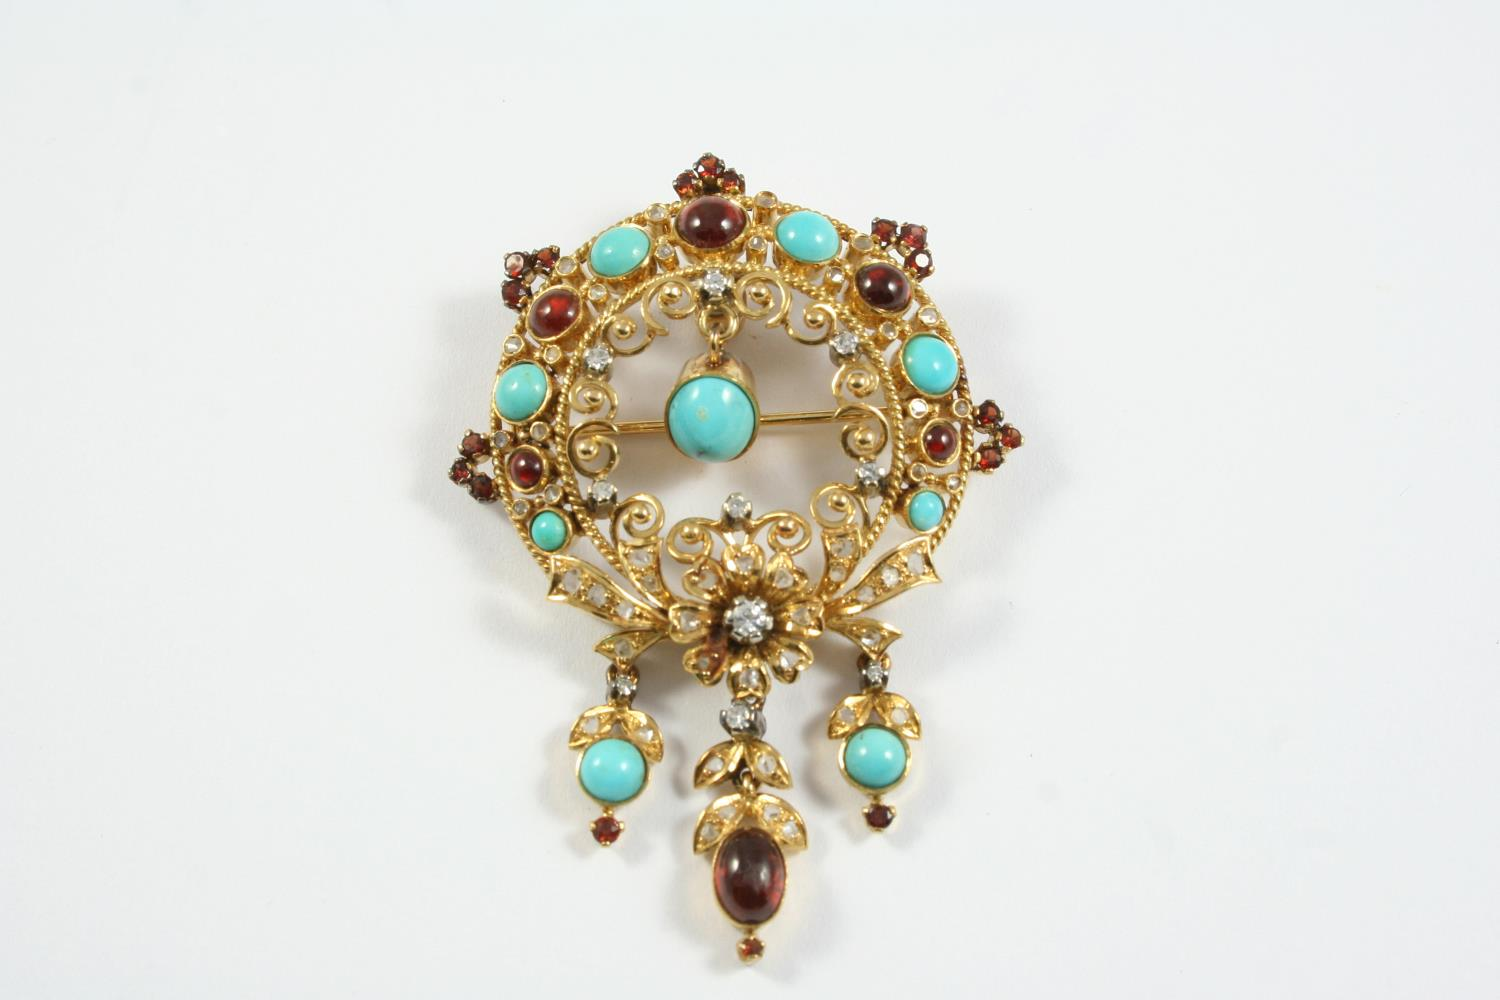 A GOLD, GARNET, TURQUOISE AND DIAMOND BROOCH PENDANT the 18ct gold openwork foliate mount is set